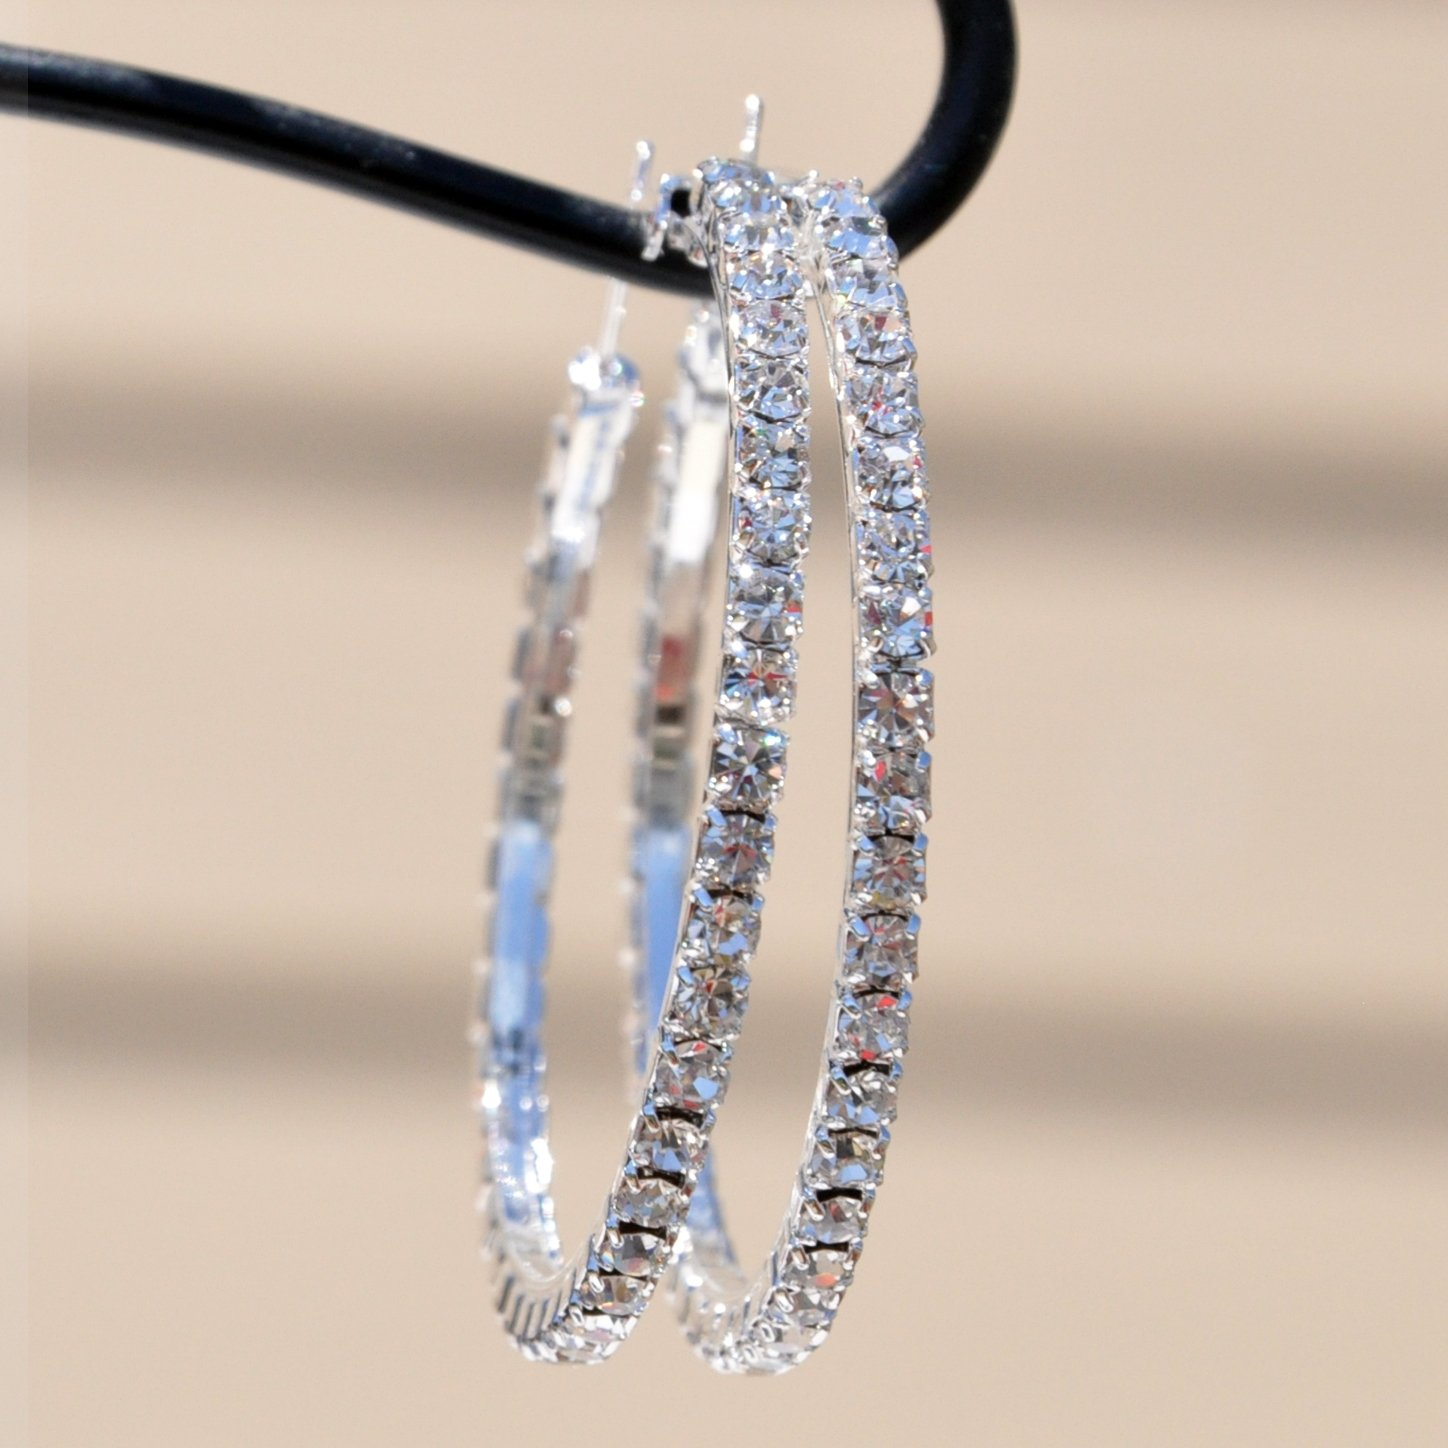 Large Rhinestone Crystal Embellished Hoop Earrings